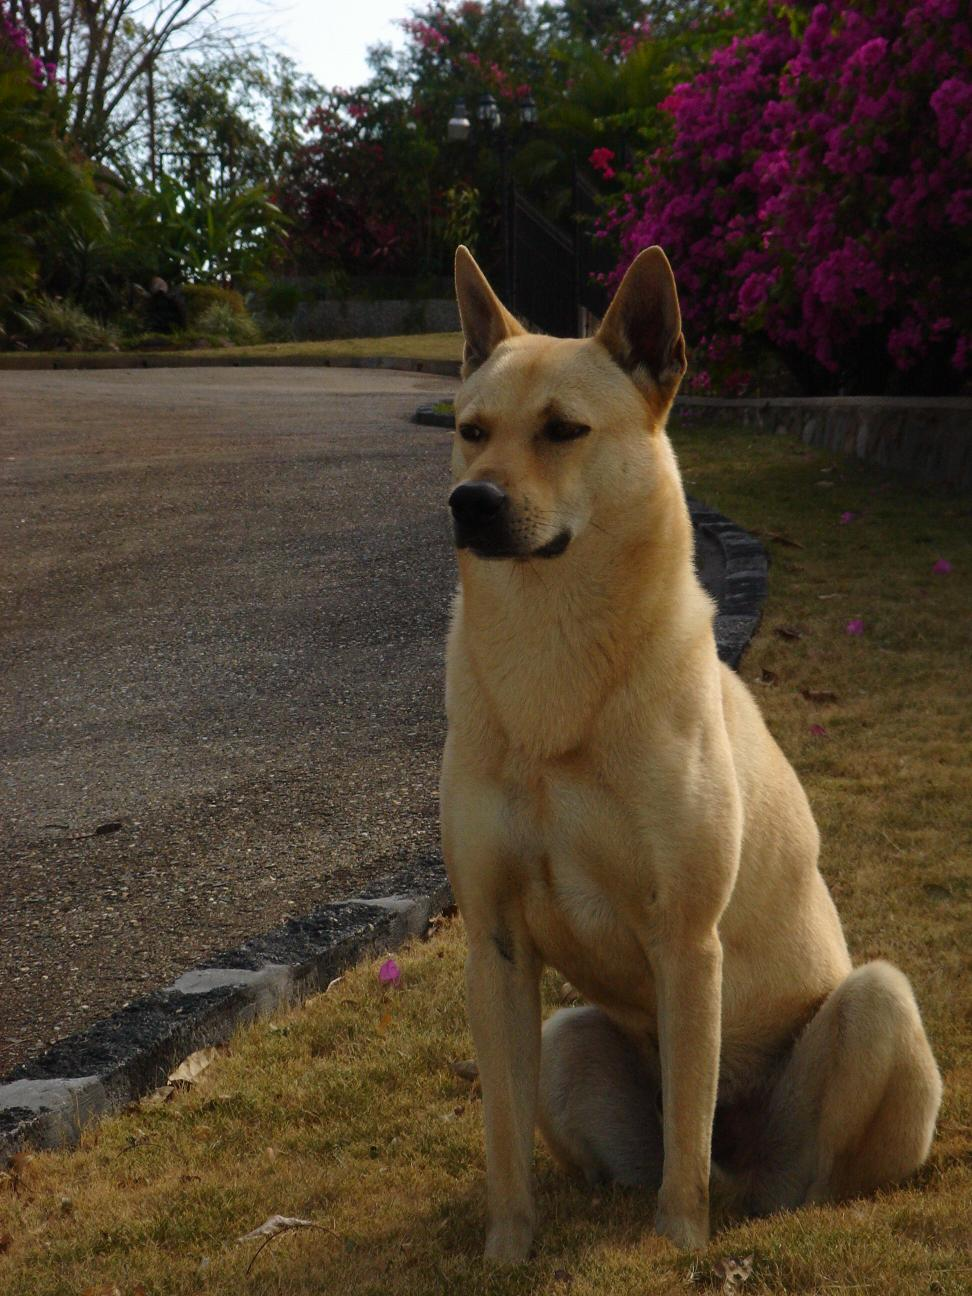 Canaan dog is a breed of pariah dog